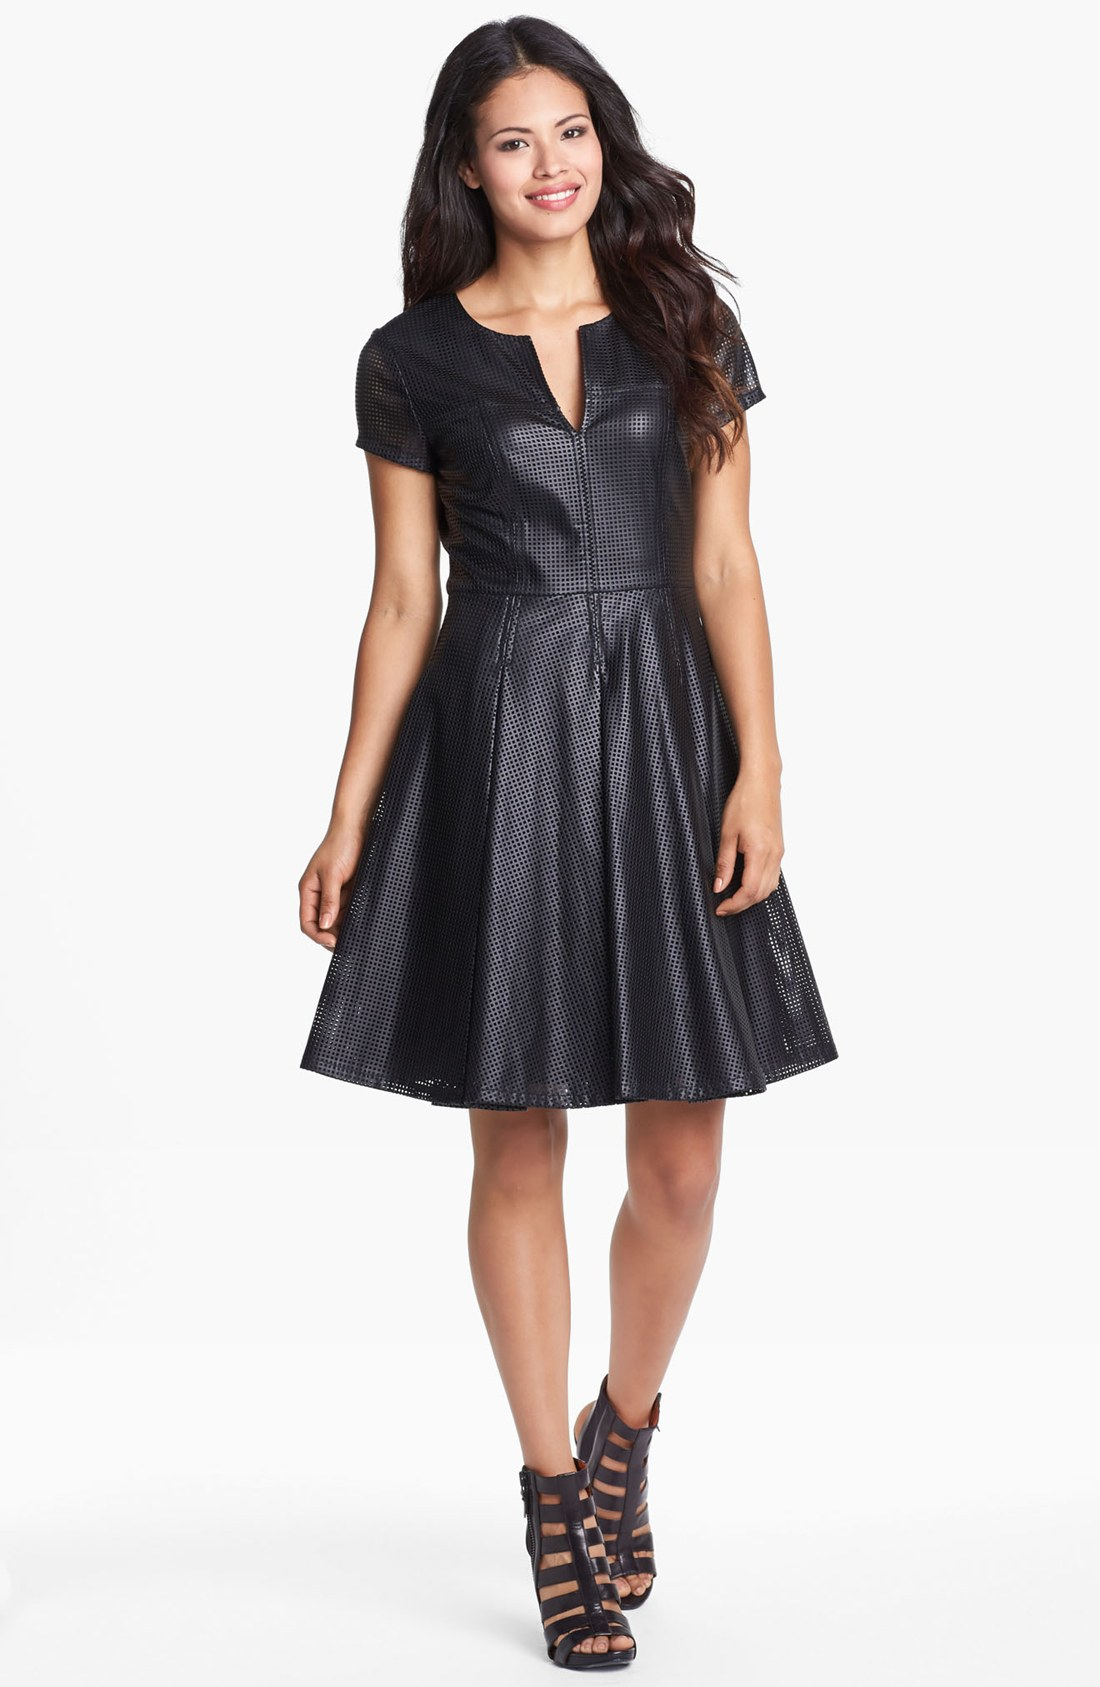 Leather Dresses For Women - RP Dress